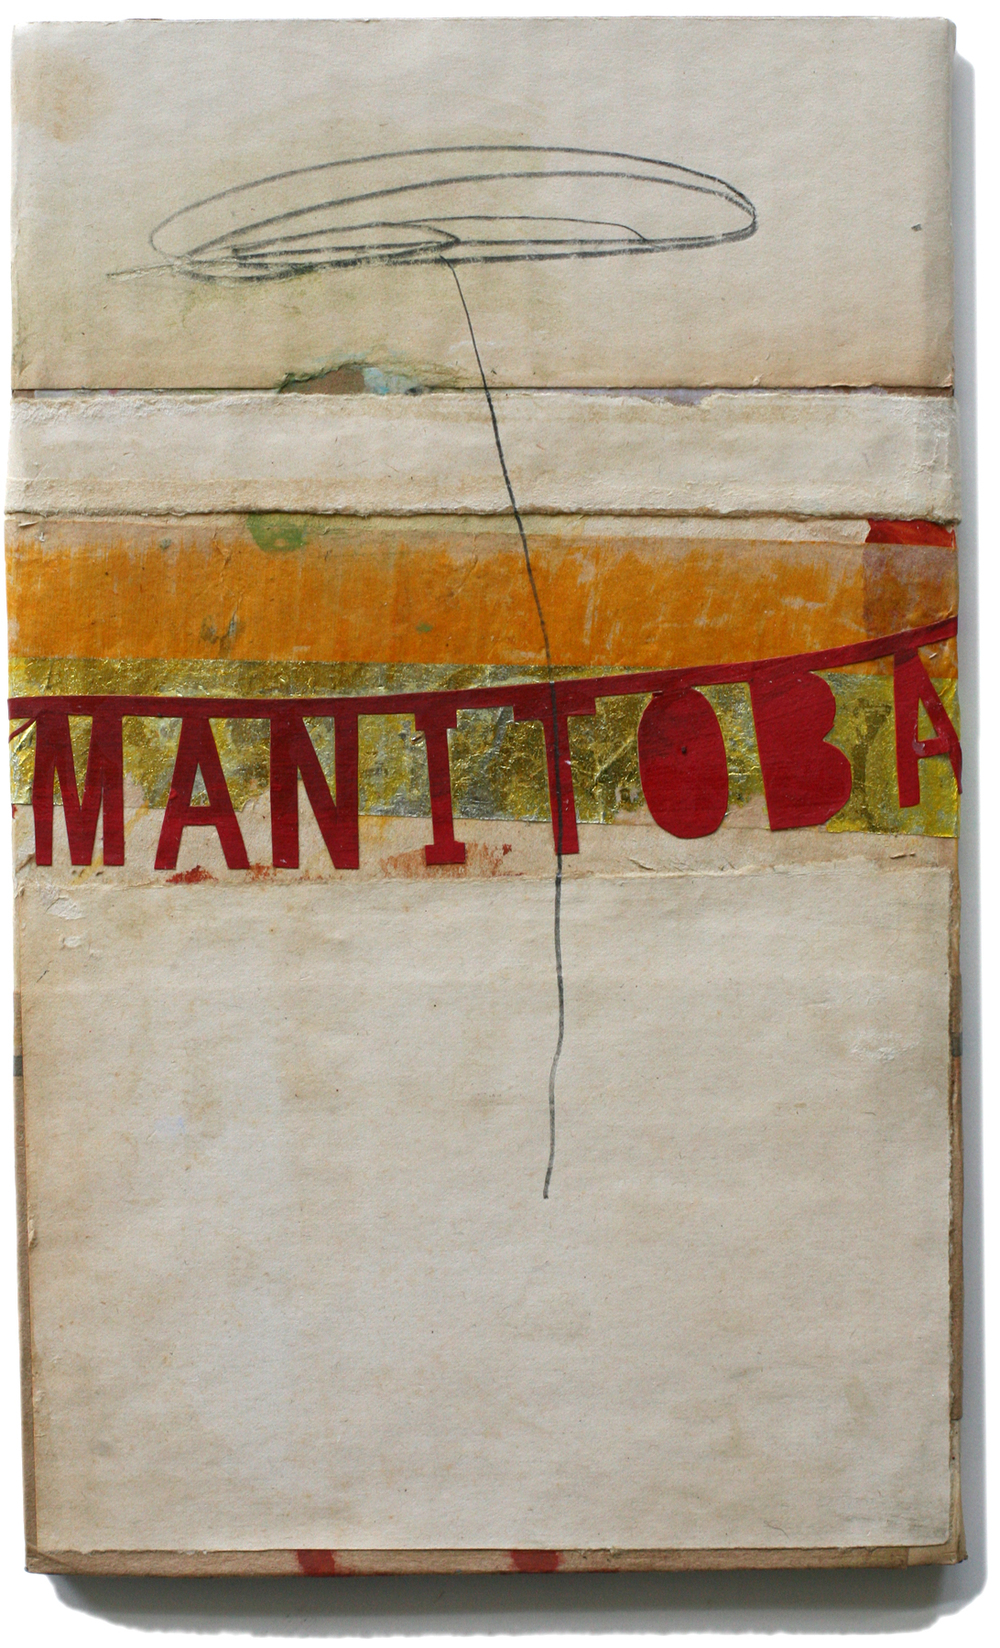 "Manitoba, 10"" x 6"", 2008-2010 (private collection)"